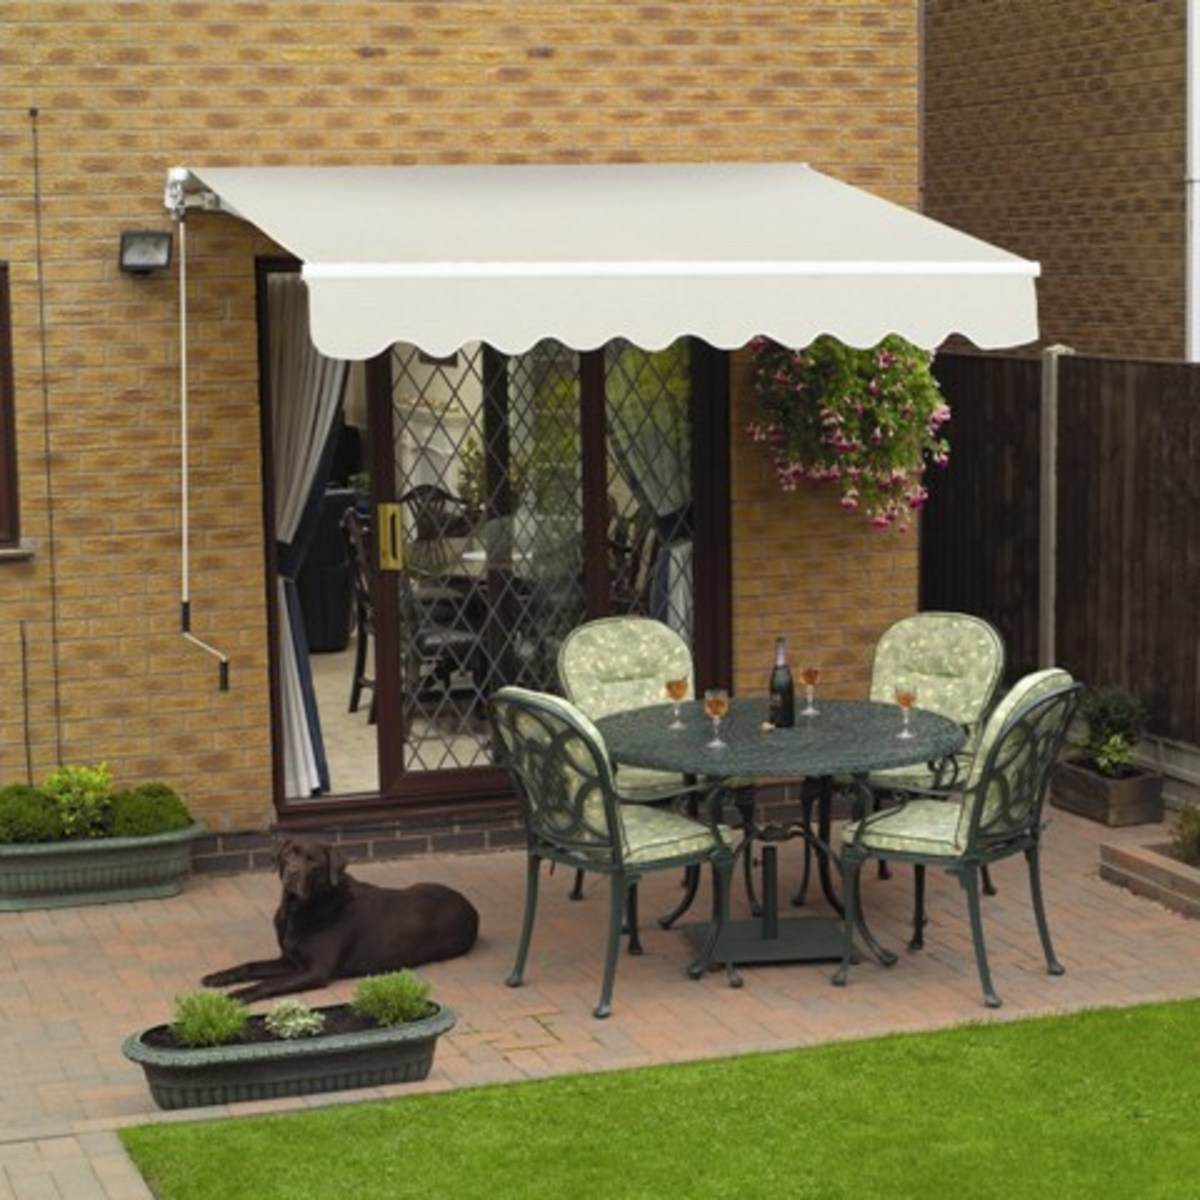 Patio Canopies, Overheads, and Roofs